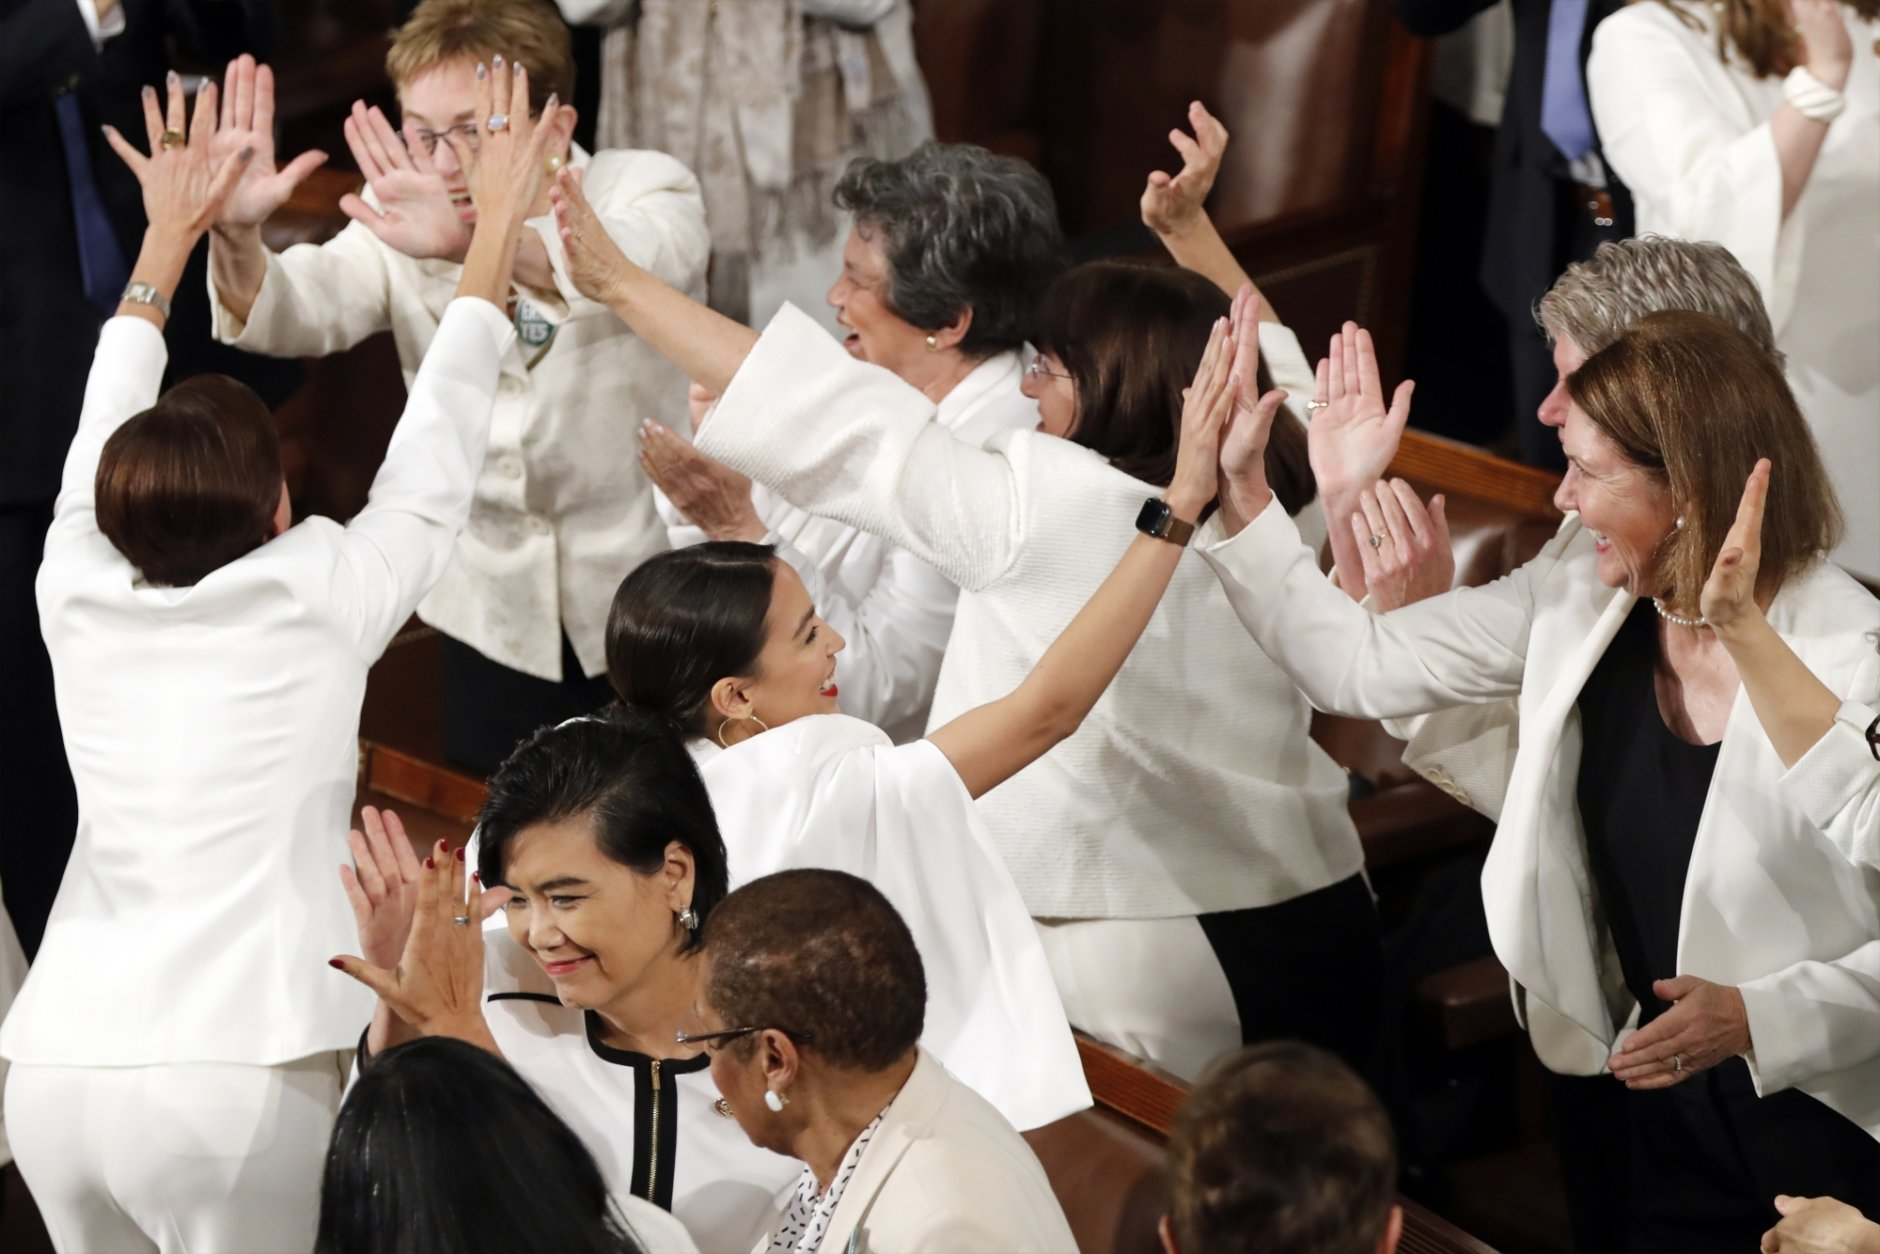 Women in white: Democrats draw contrast at Trump's address | WTOP